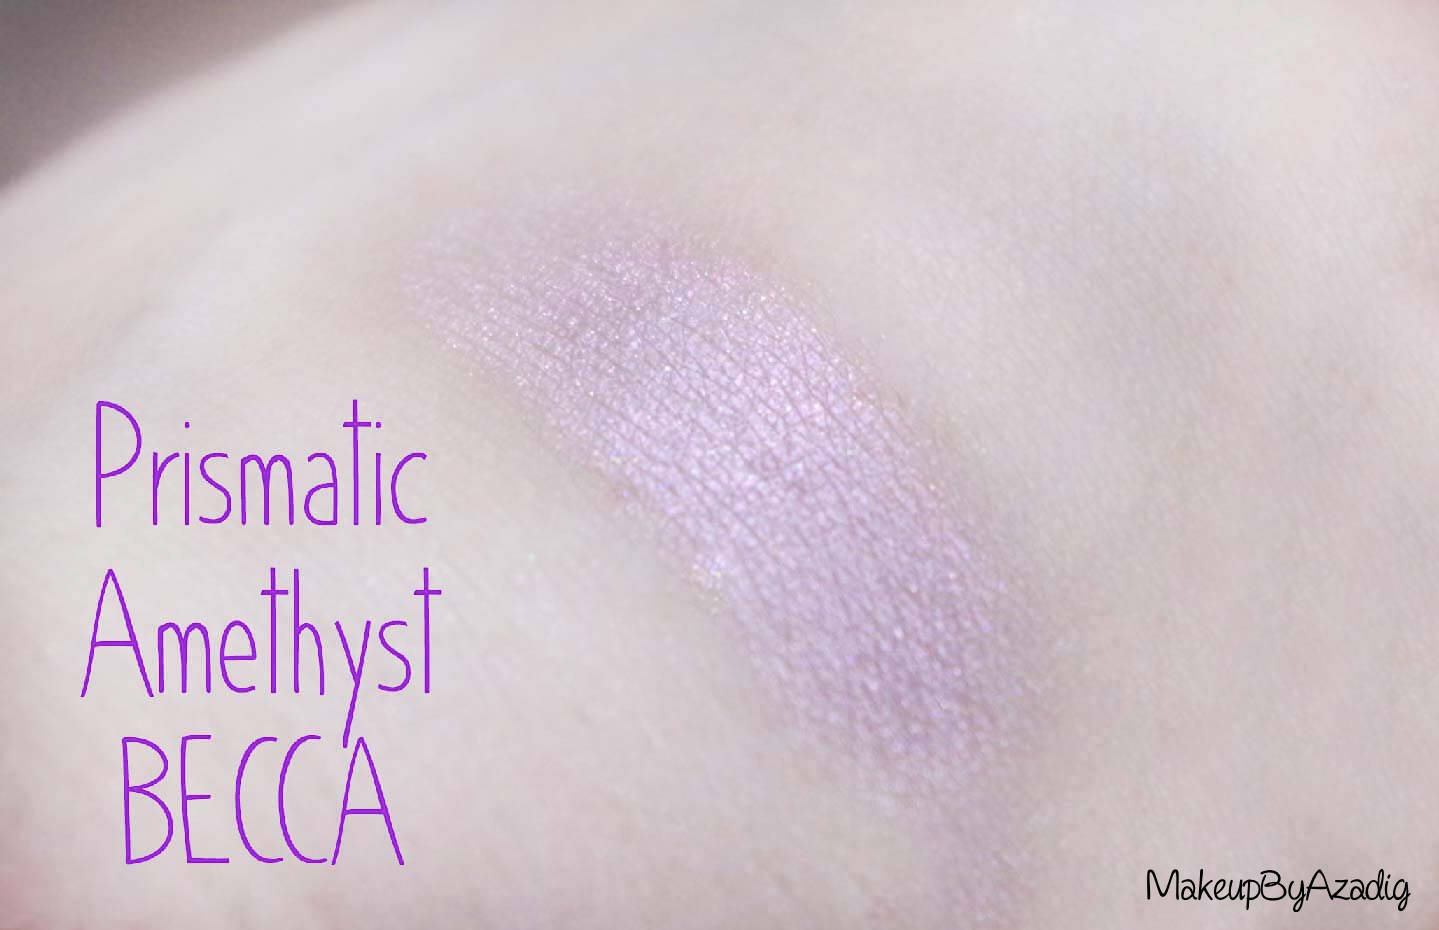 revue-becca-shimmering-skin-perfector-pressed-highlighter-enlumineur-violet-prismatic-amethyst-avis-swatch-prix-makeupbyazadig-swatches